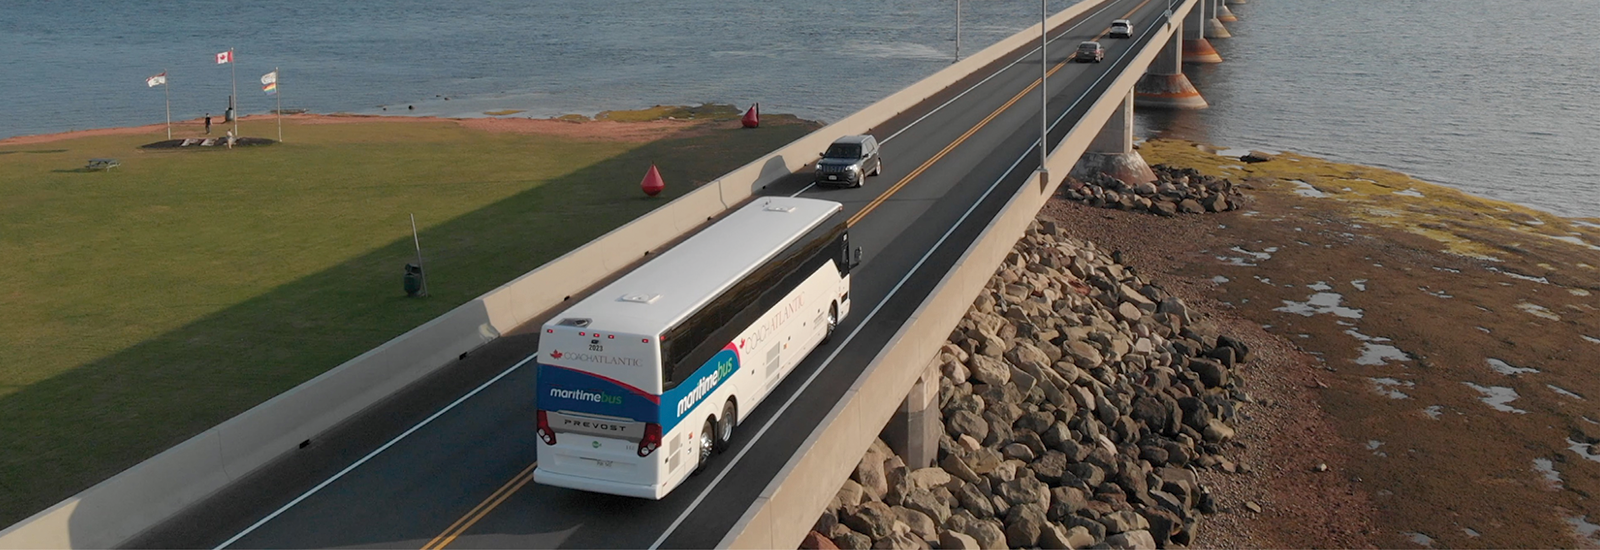 maritime bus on confederation bridge